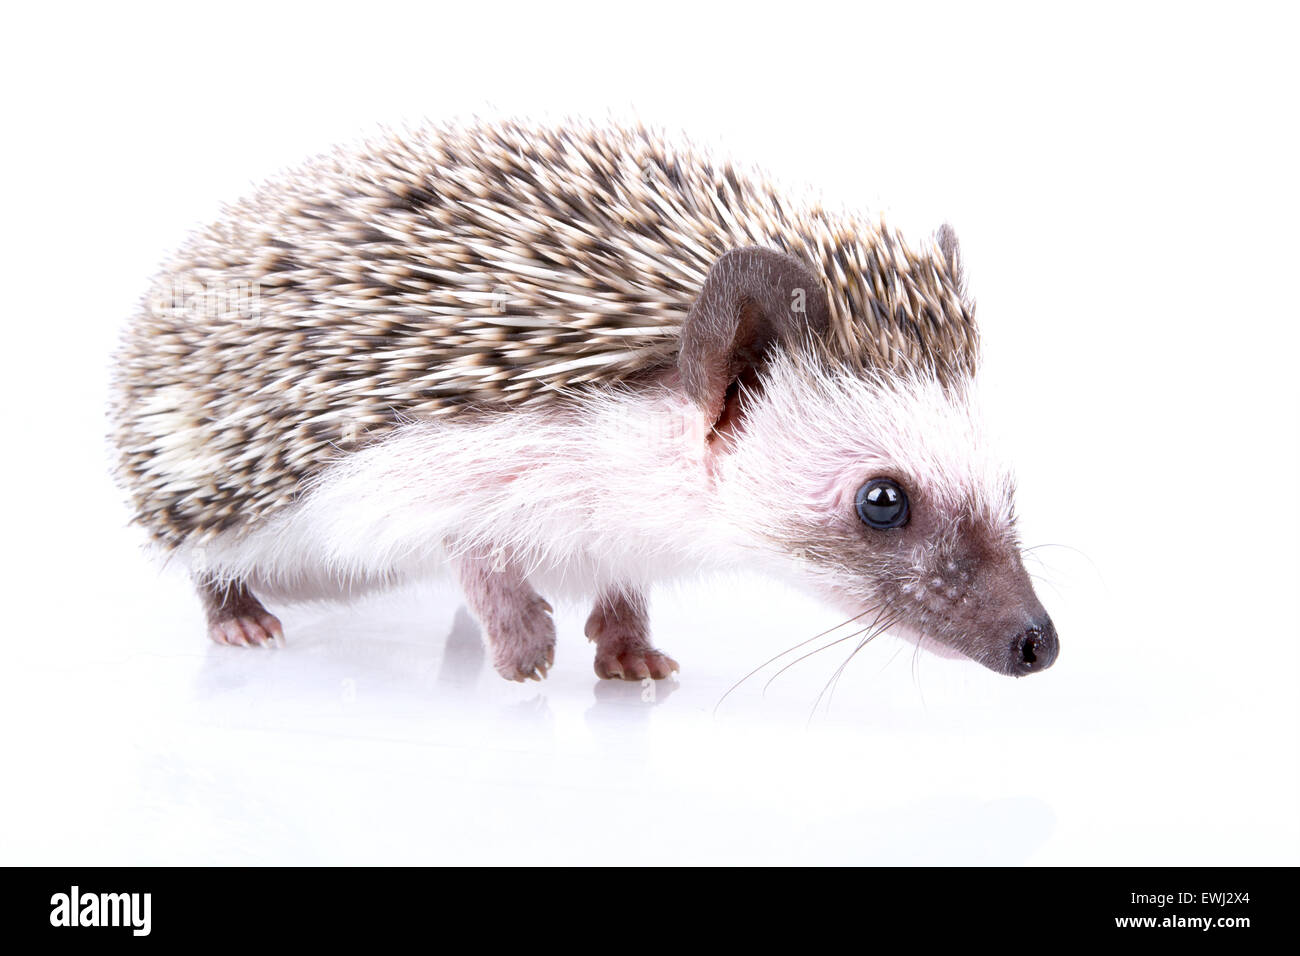 Small male of hedgehog on white background. - Stock Image